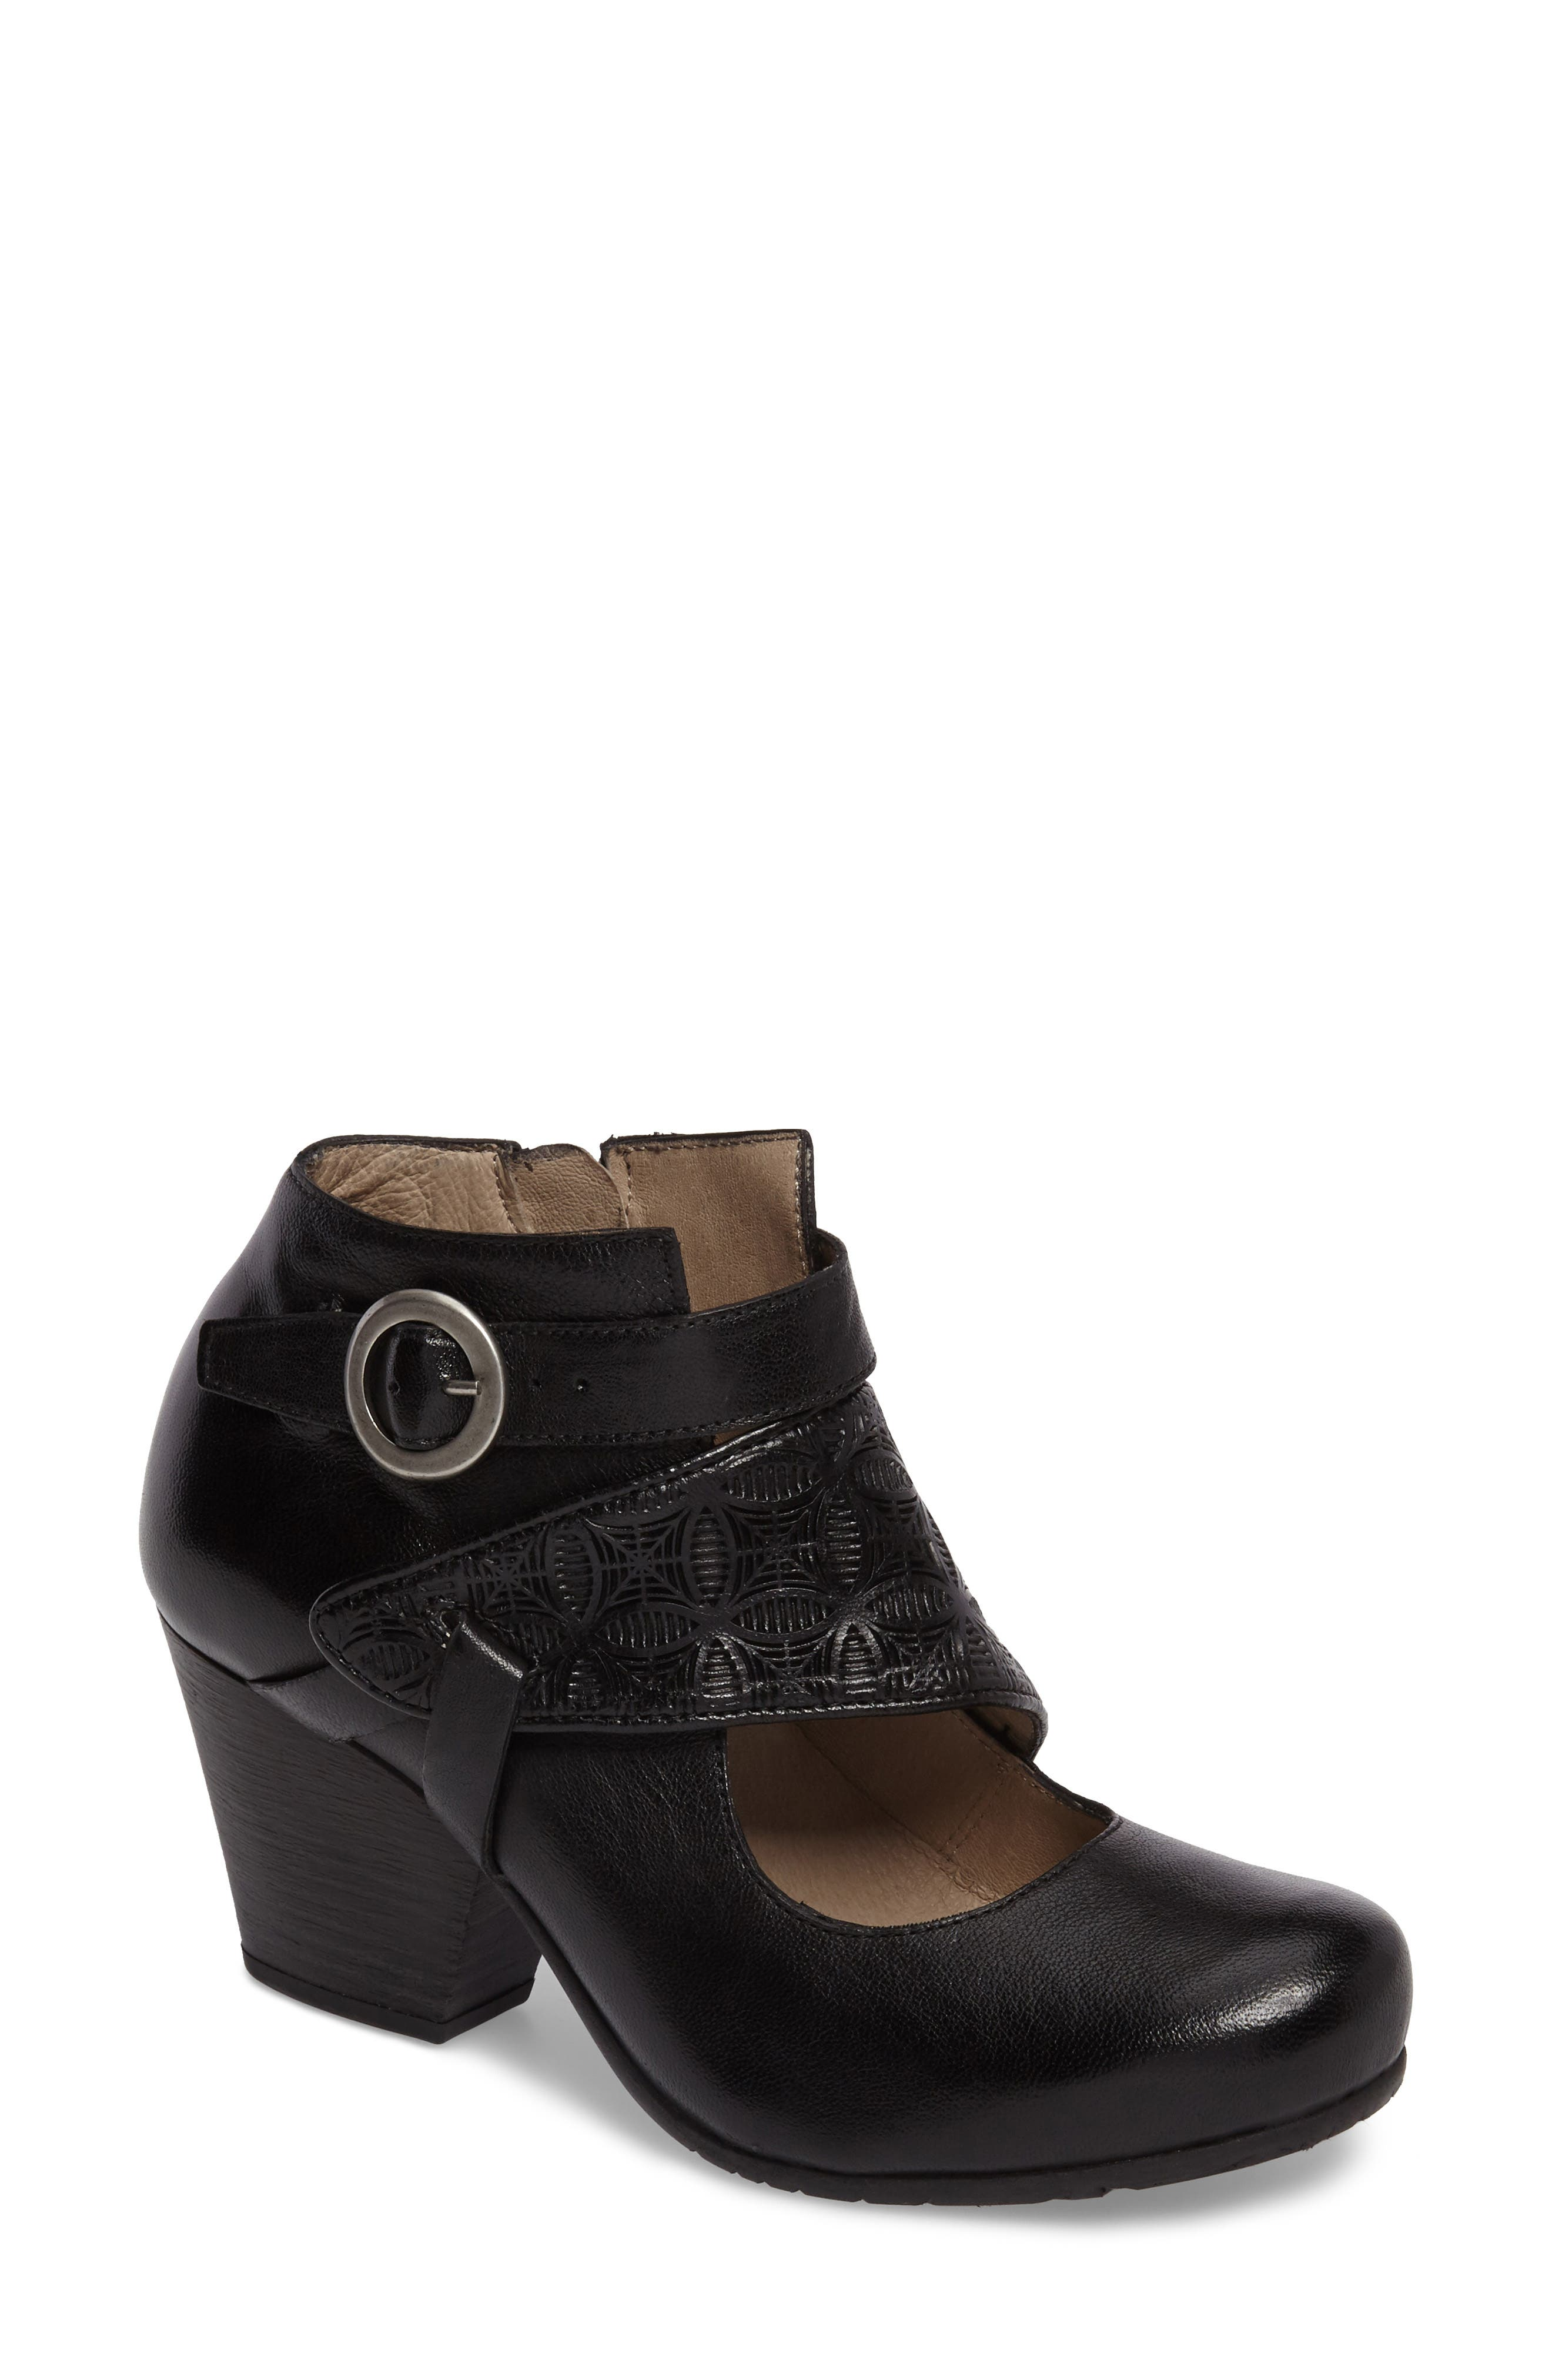 Dale Embossed Mary Jane Bootie,                             Main thumbnail 1, color,                             Black